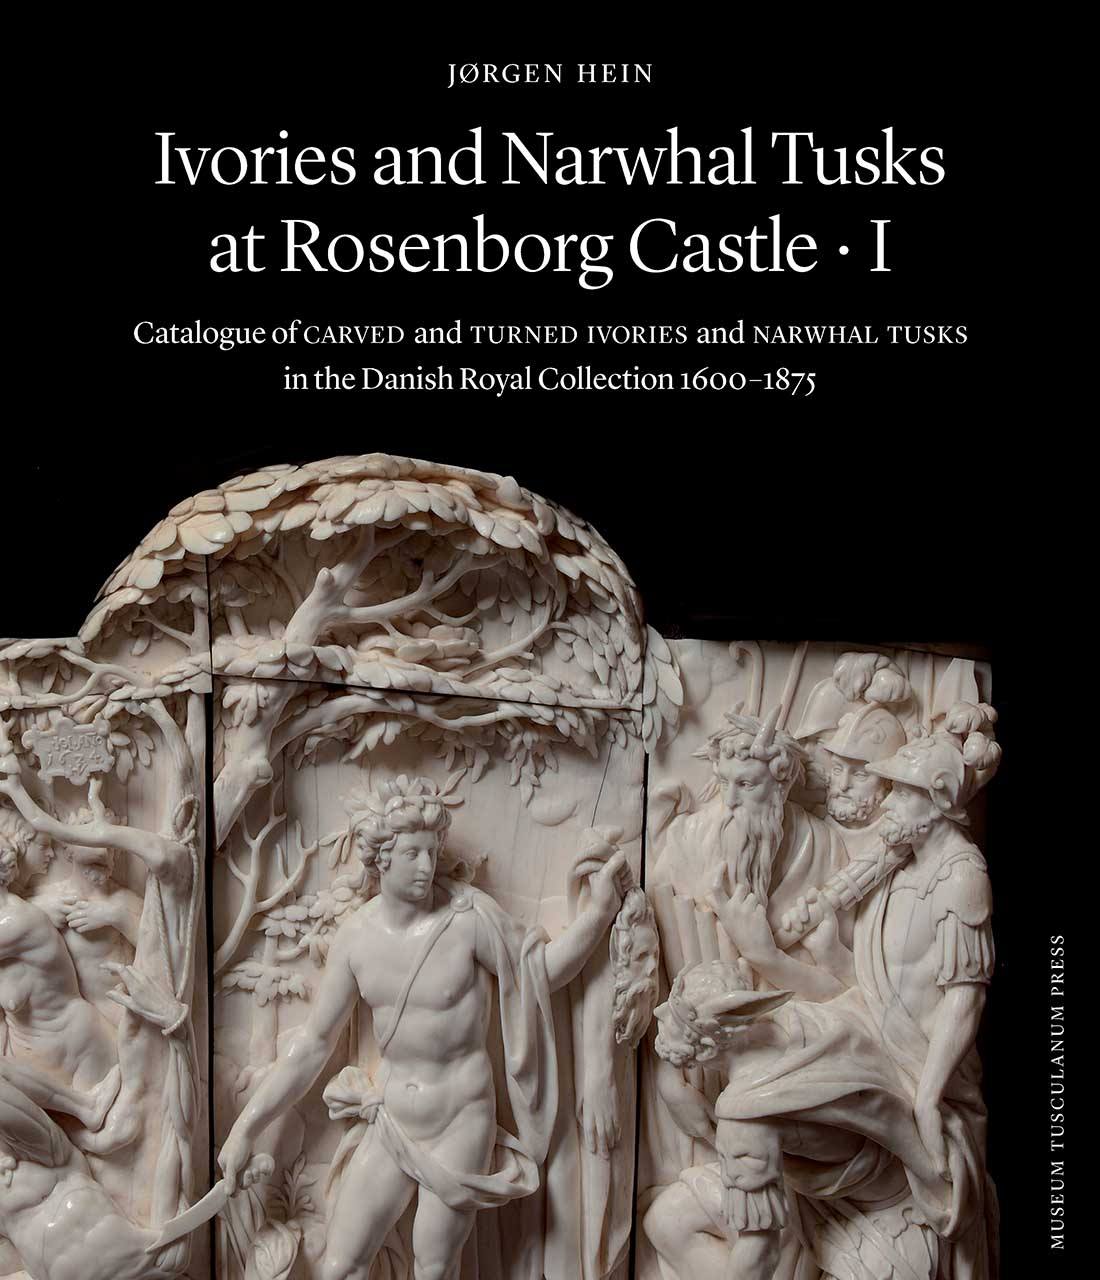 Ivories and Narwhal Tusks at Rosenborg Castle: Catalogue of Carved and Turned Ivories and Narwhal Tusks in the Royal Danish Collection 1600–1875